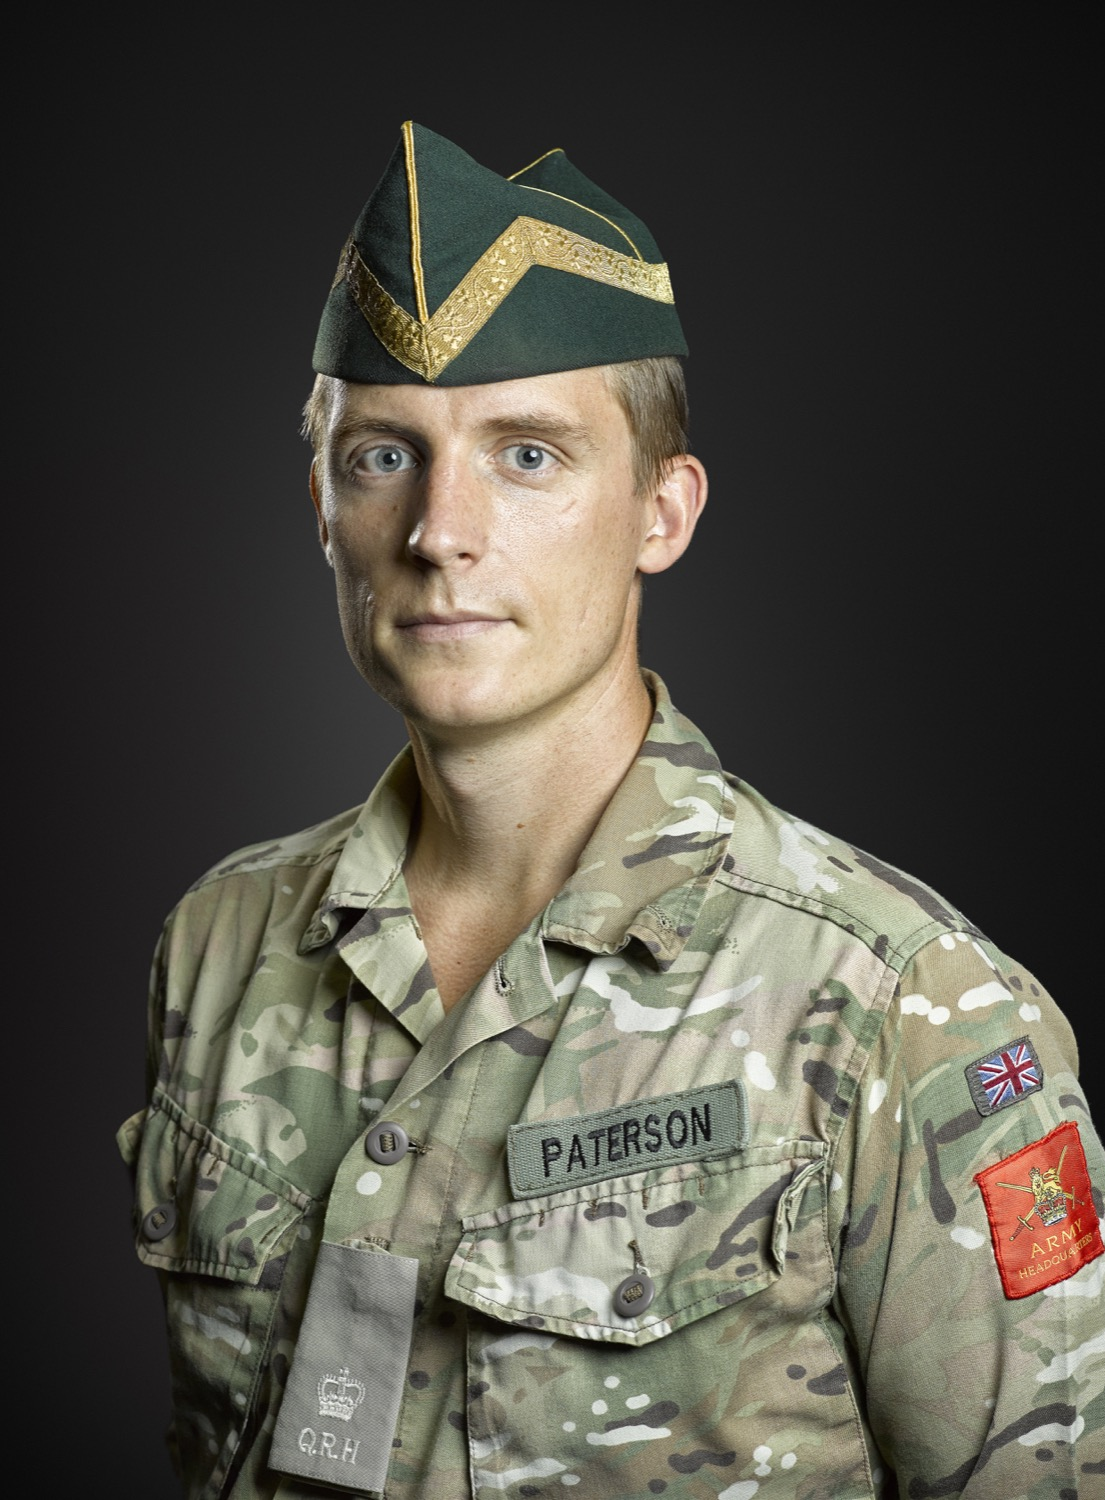 Major Paterson (The Queens Royal Hussars) Rory Lewis Photographer